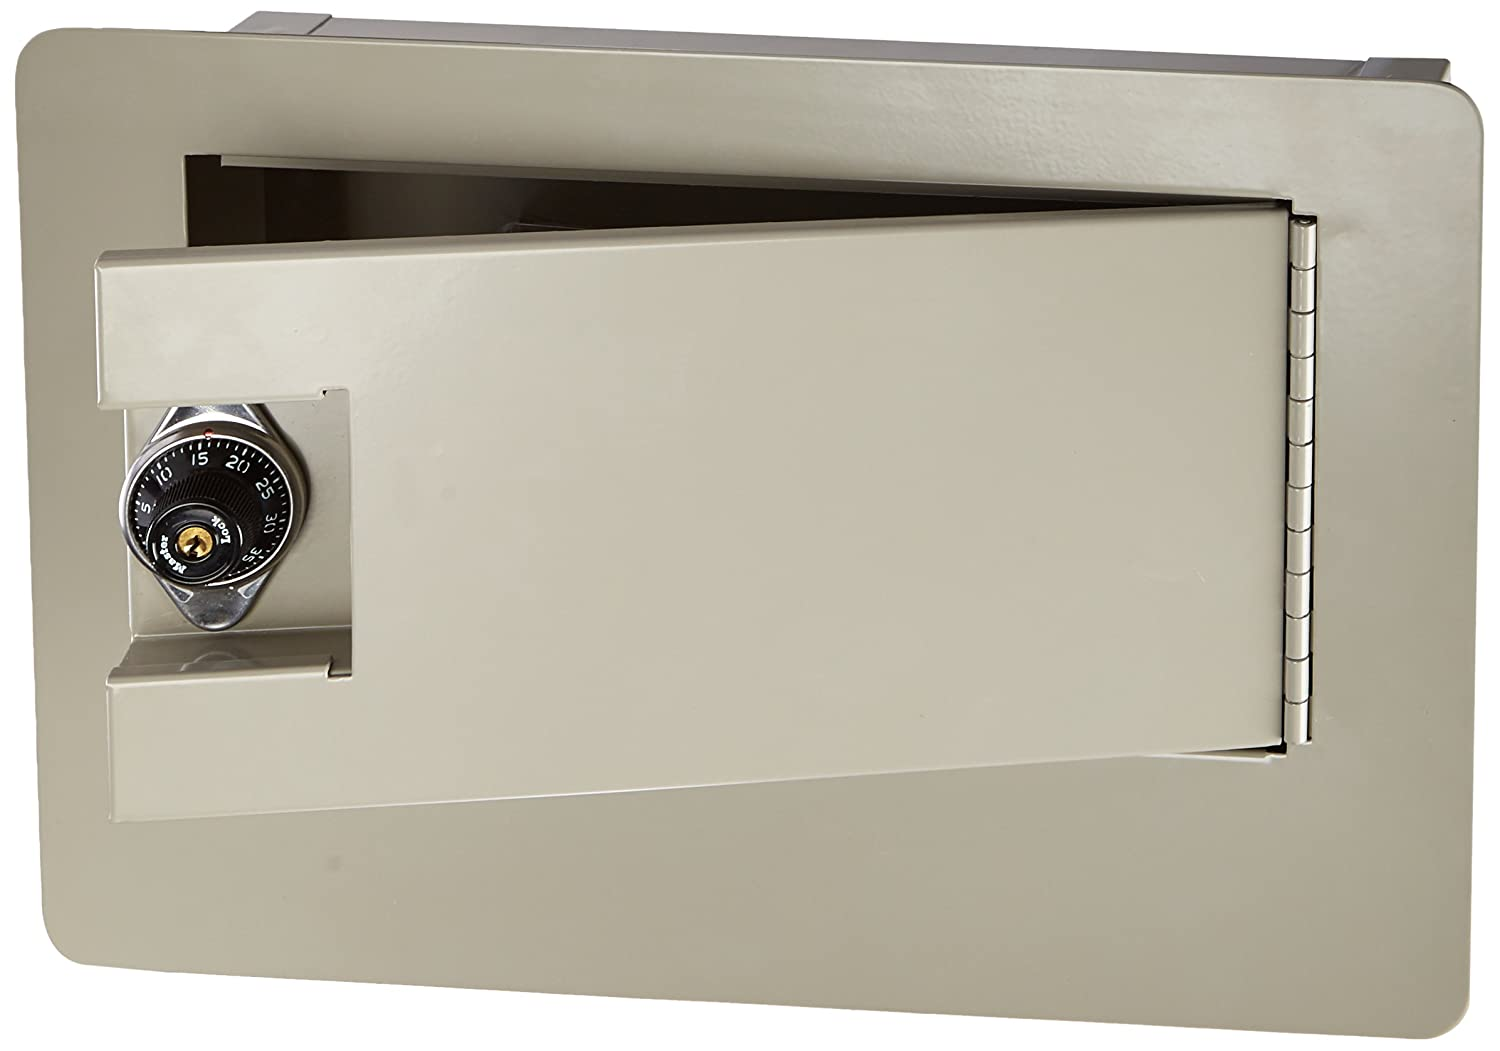 Buddy Products Wall Safe with Double Reinforced Heavy Gauge Steel Door, 3.75 x 9 x 9.375-Inch, Putty (3100-6)